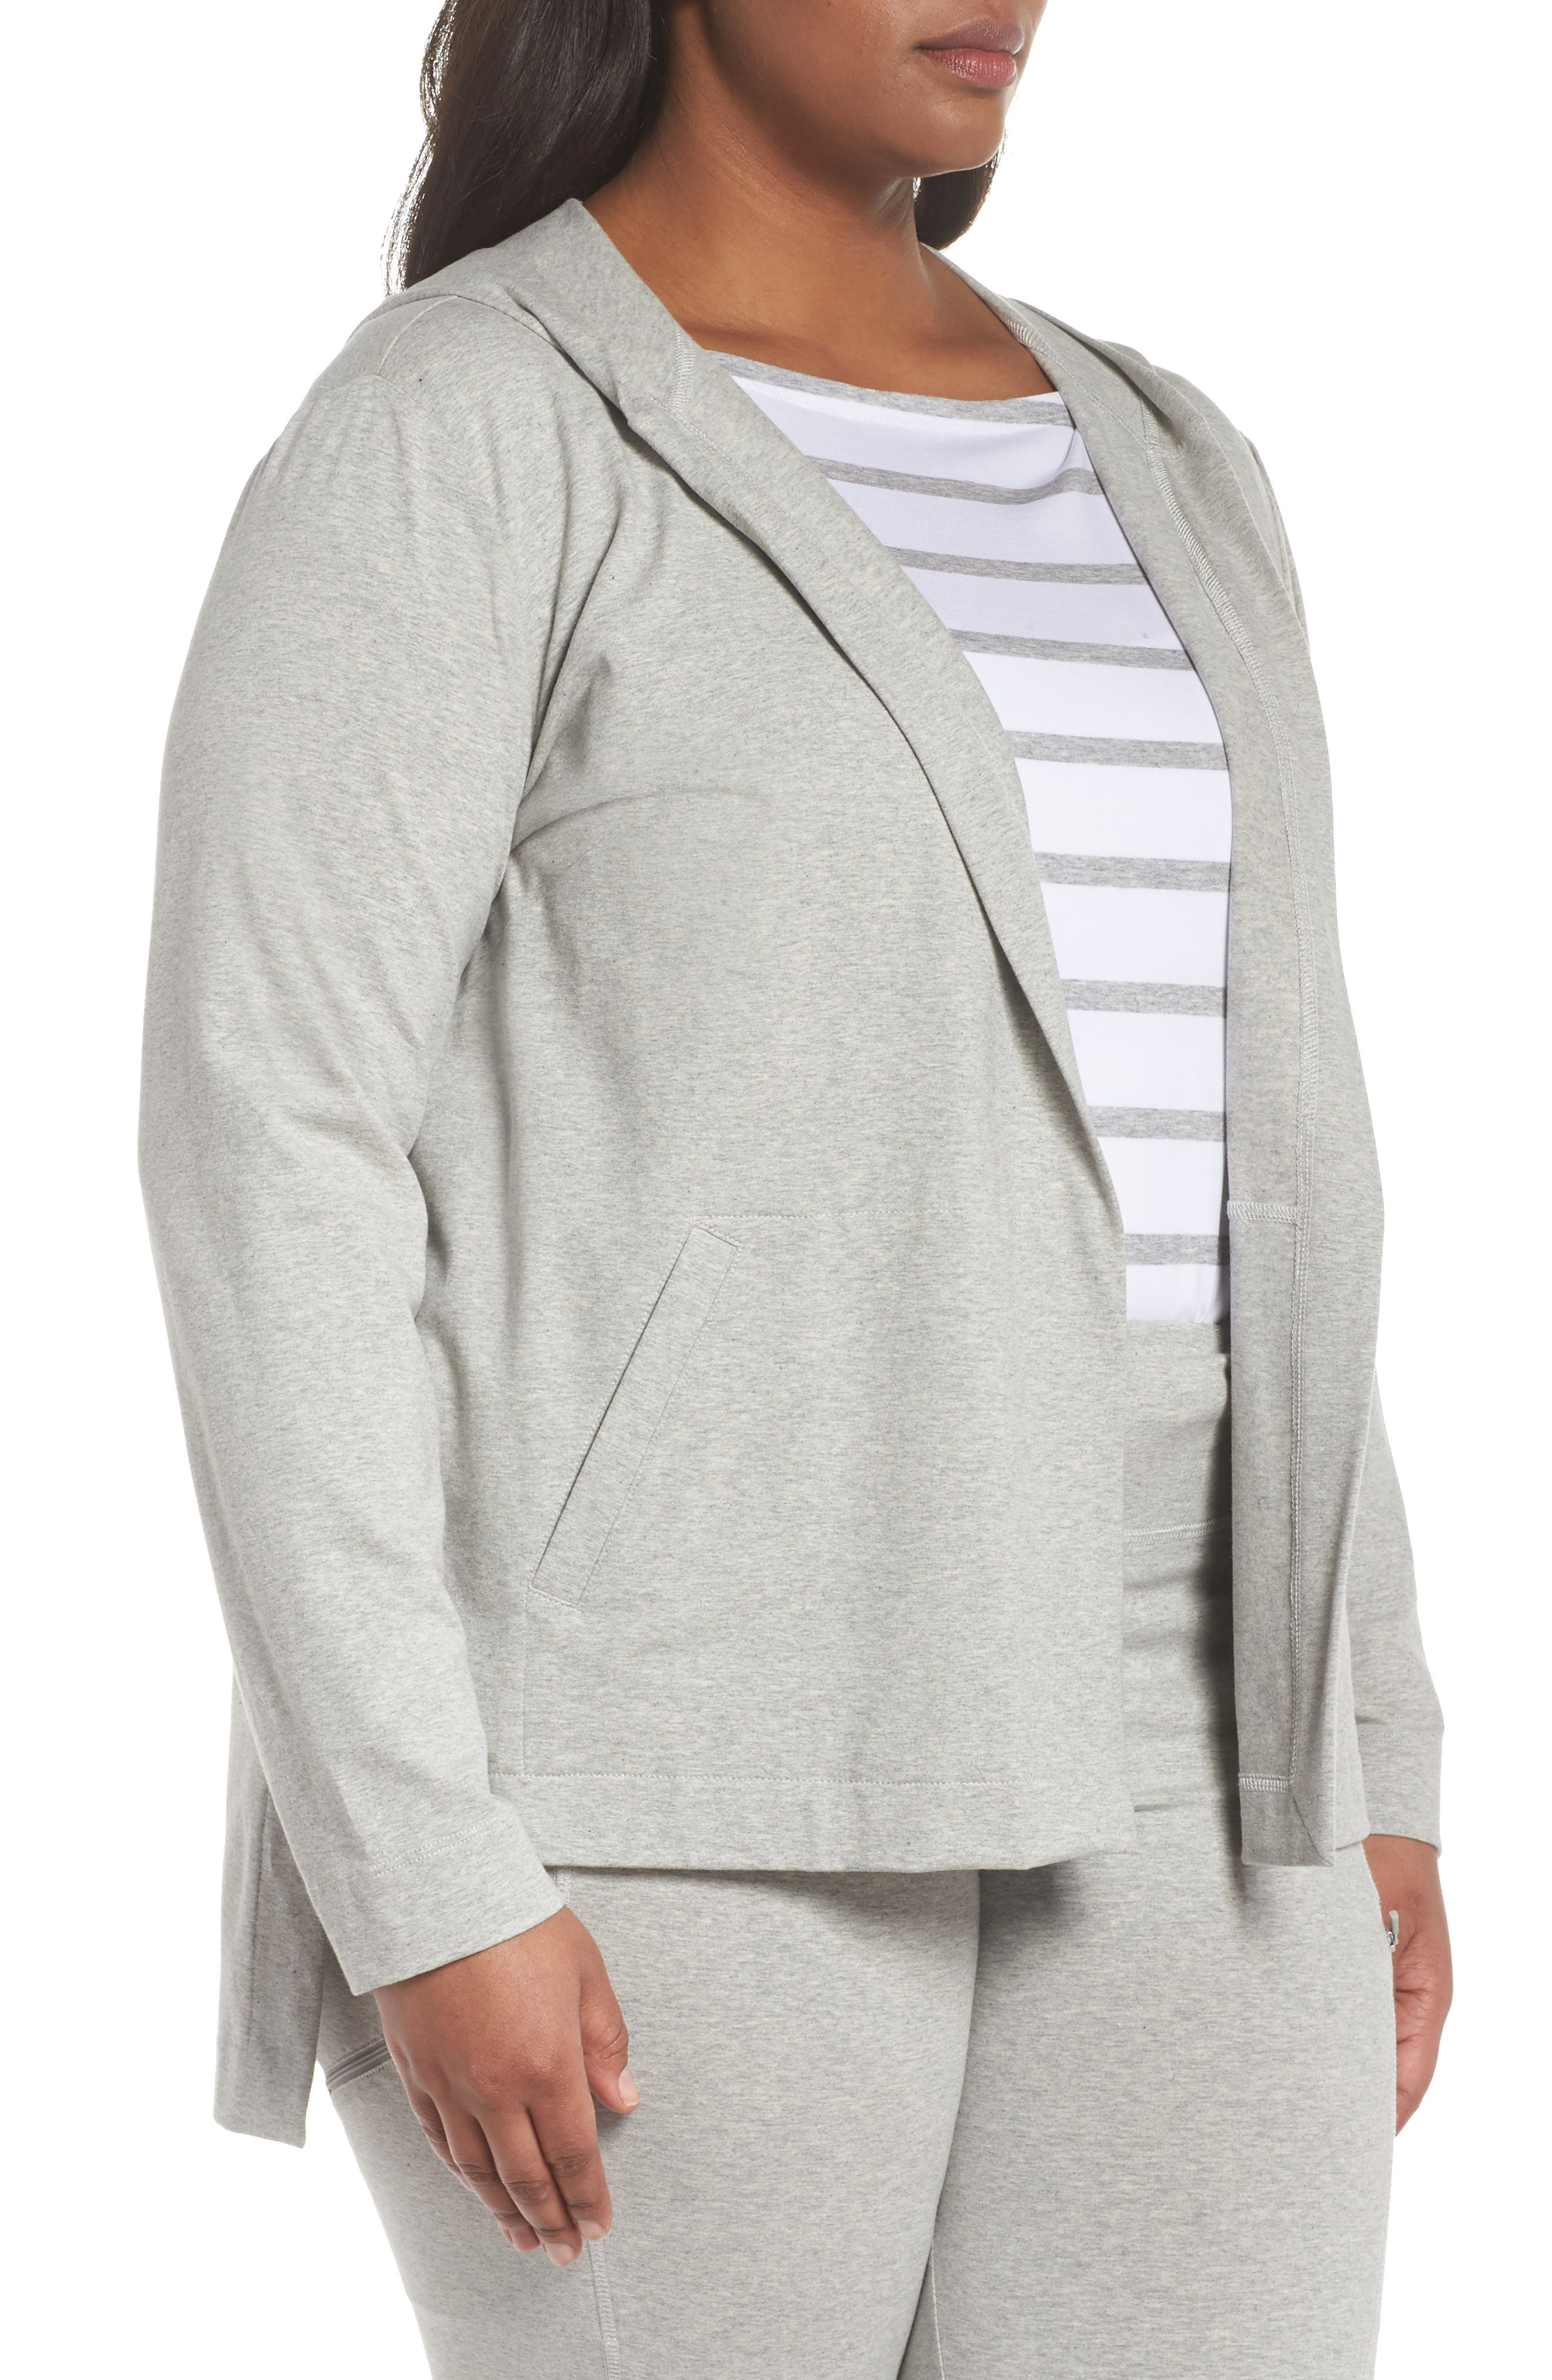 Stretch Organic Cotton Knit Hooded Jacket,                             Alternate thumbnail 3, color,                             020